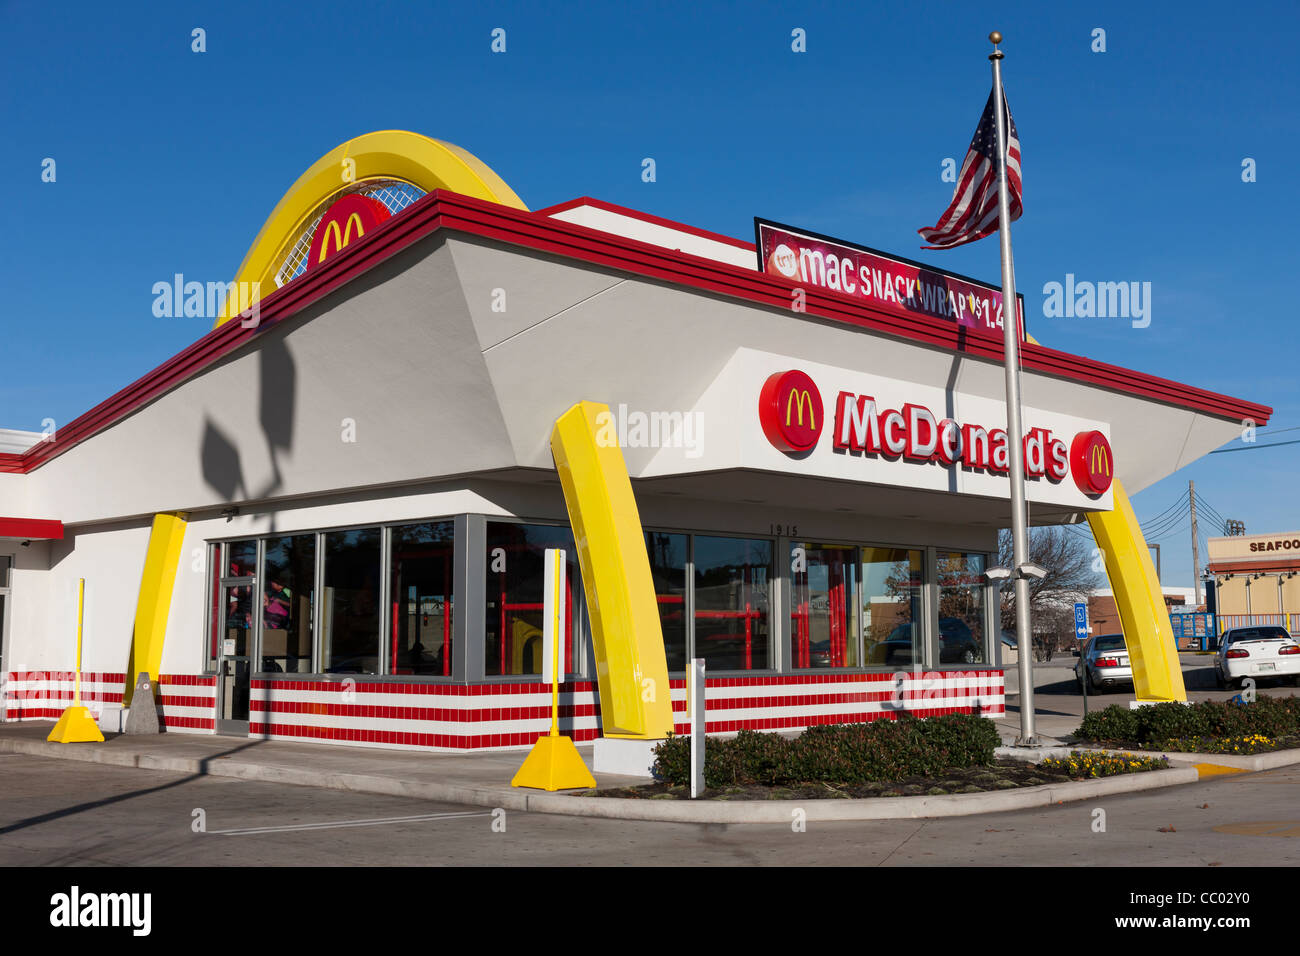 A drive-through McDonald's fast food restaurant renovated in a 1950's retro style in Jackson, Tennessee. - Stock Image